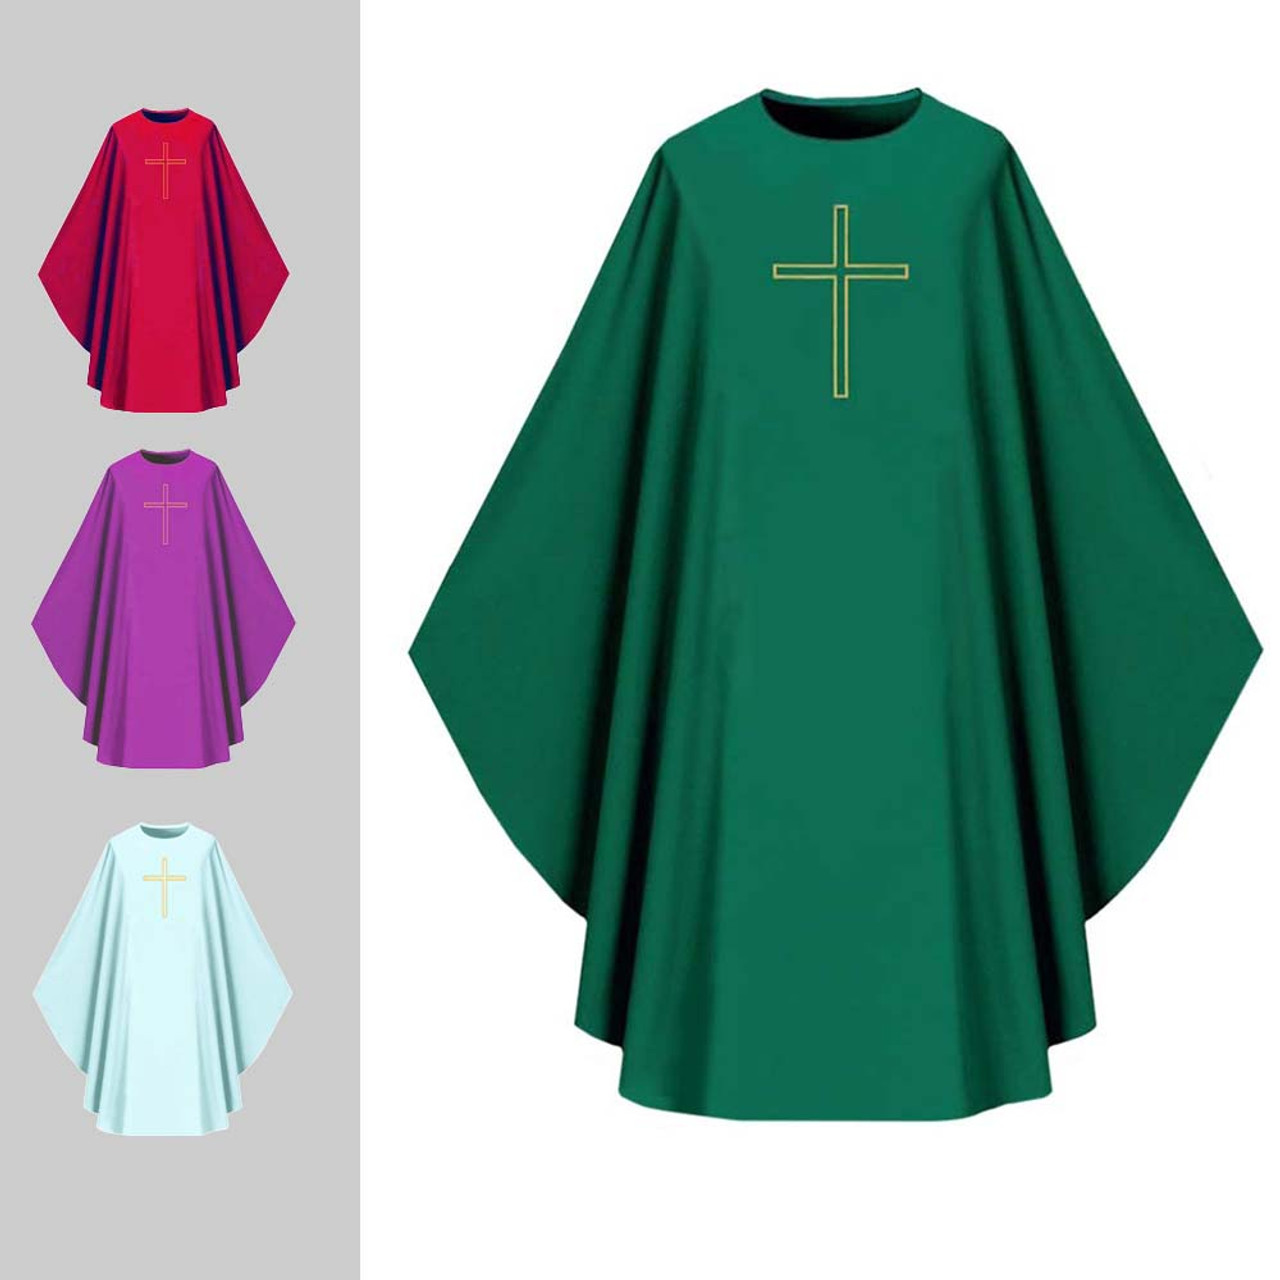 1002 Gothic Green Assisi Chasuble